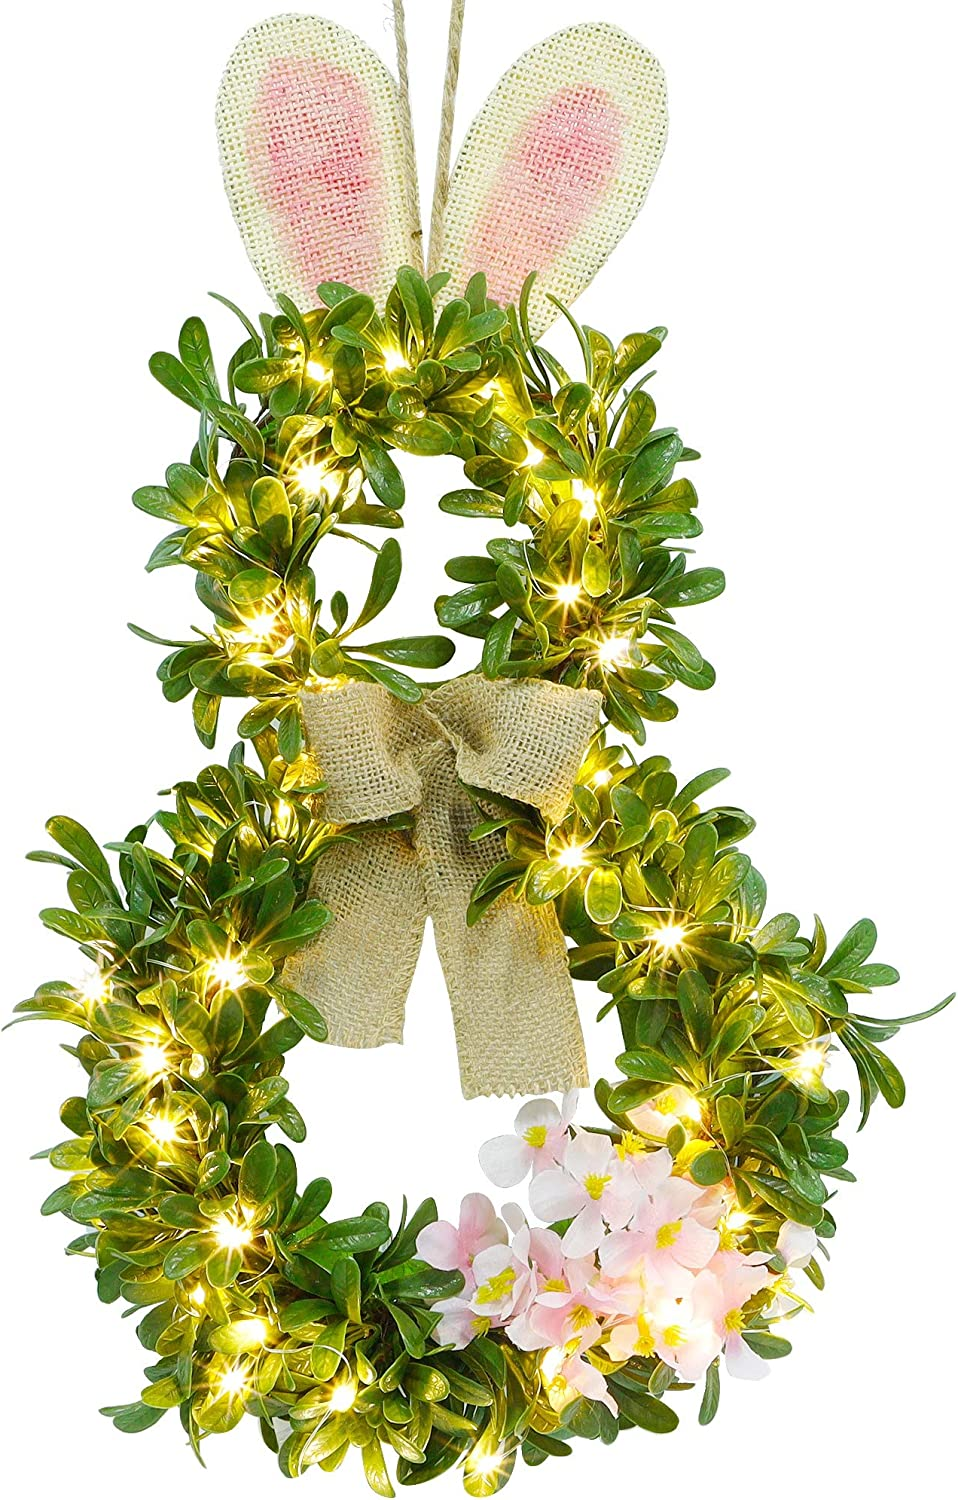 Twinkle Star 19 Inch Pre-lit Easter Bunny Wreath, Lighted Boxwood Wreath Spring Front Door Wreath Greenery Garland with 40 LED Warm White Copper Light & Timer, for Home Wall Hanging Spring Decor